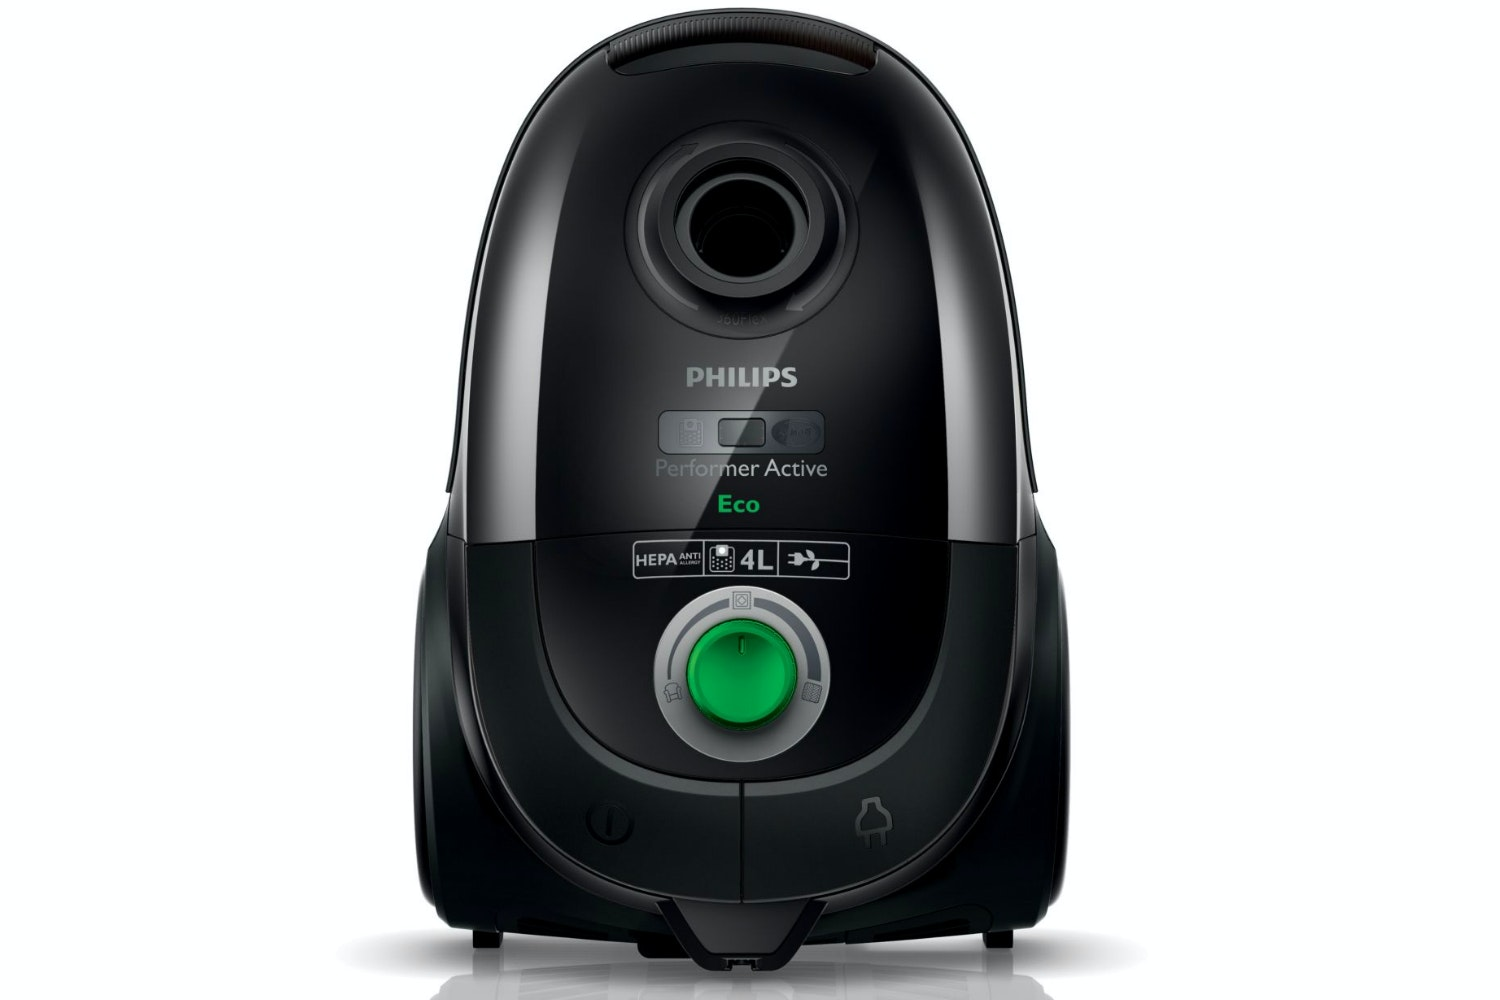 Philips Performer Active Vacuum Cleaner front